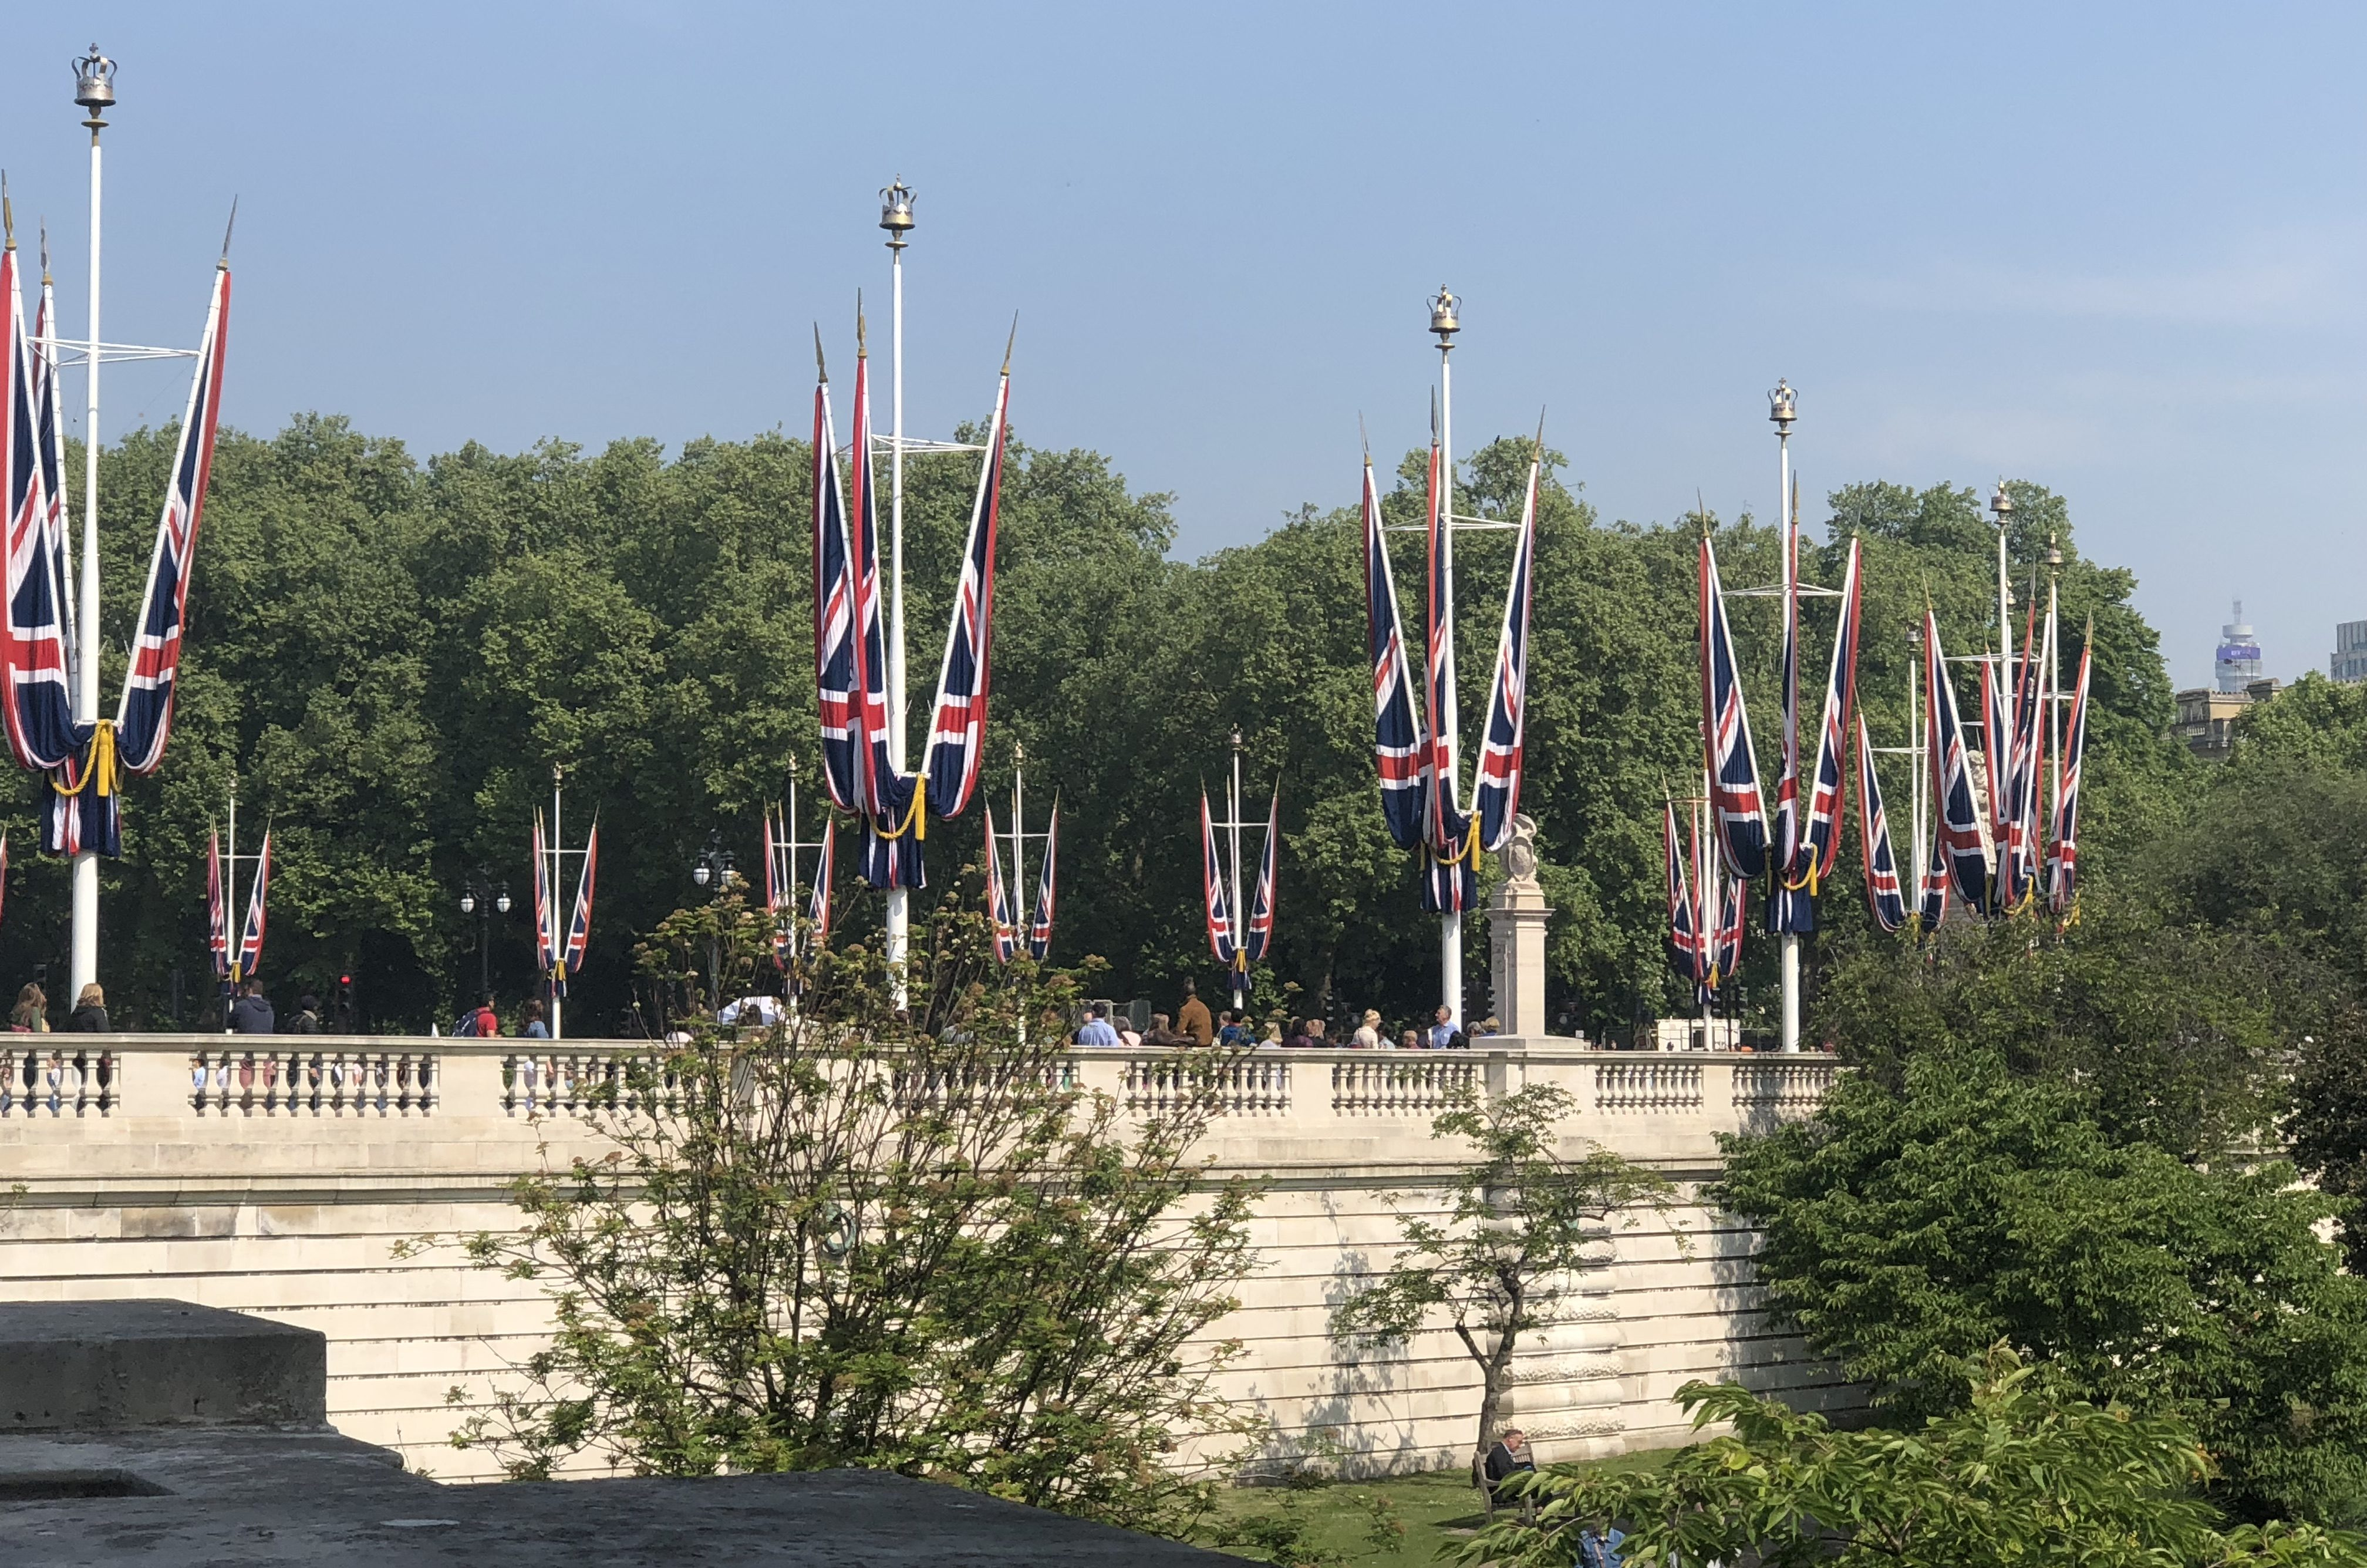 Scenes from London during the Royal Wedding